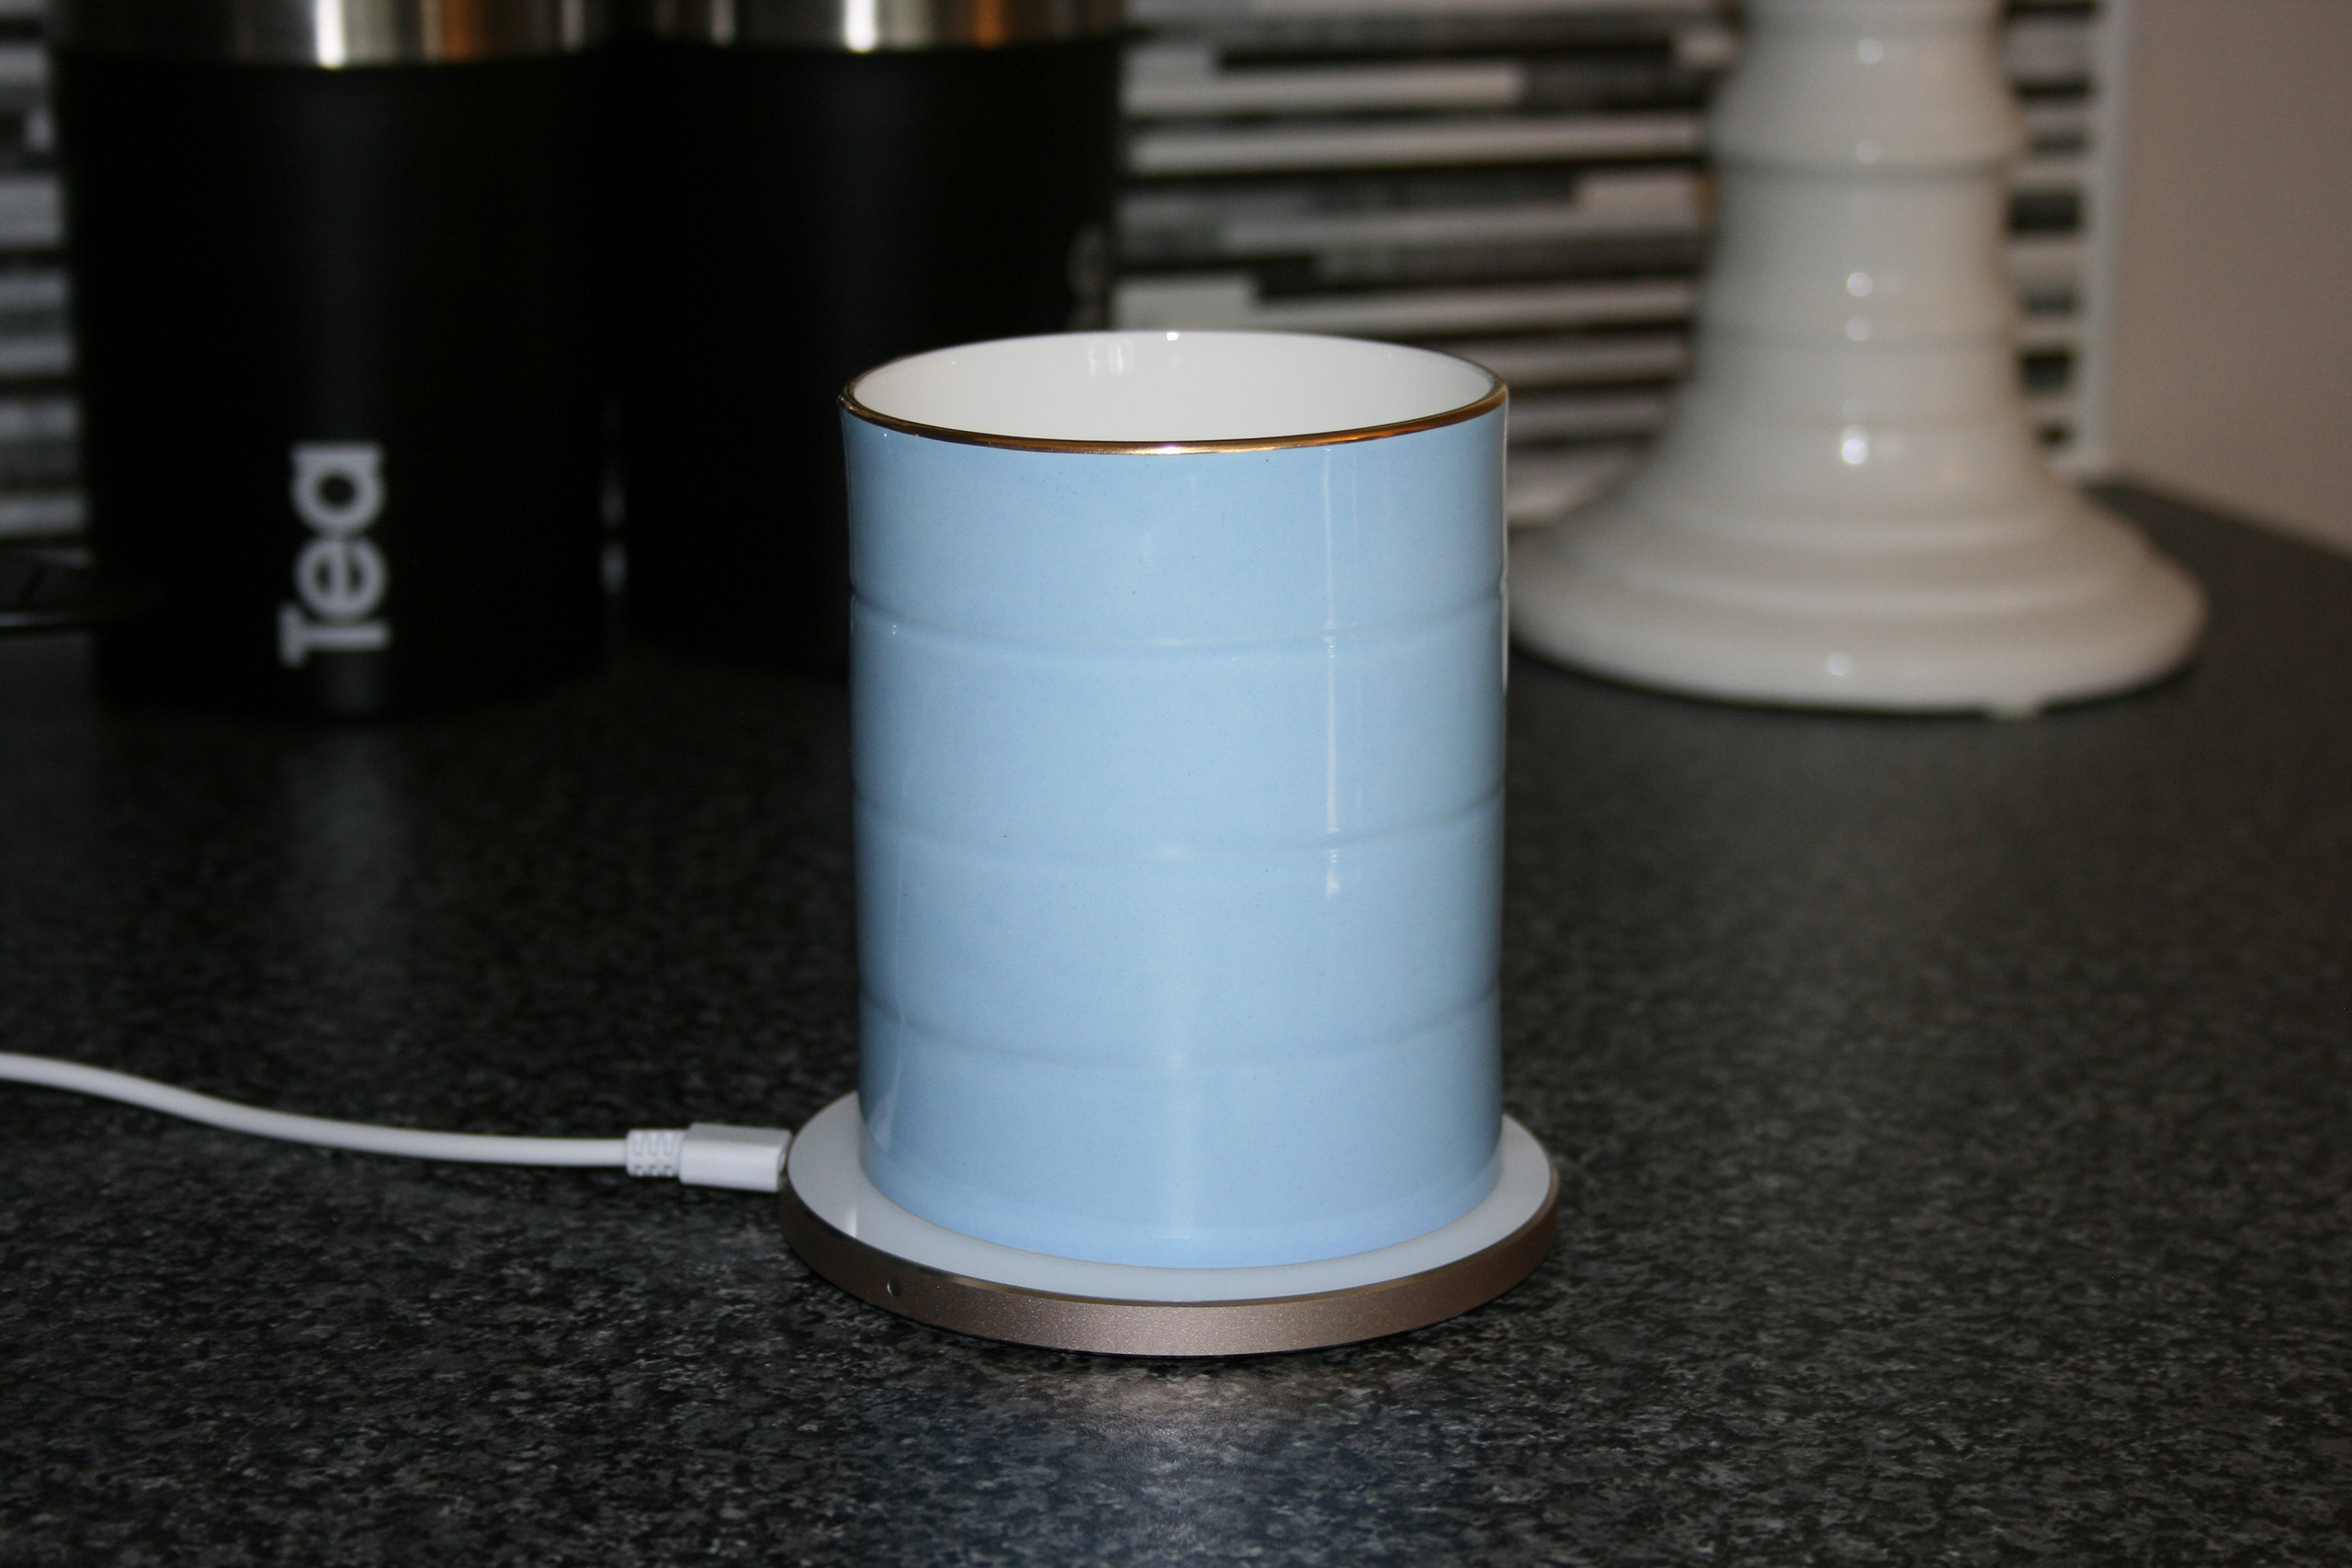 glowstone-heated-smart-mug-fine-bone-china-mug-on-charger